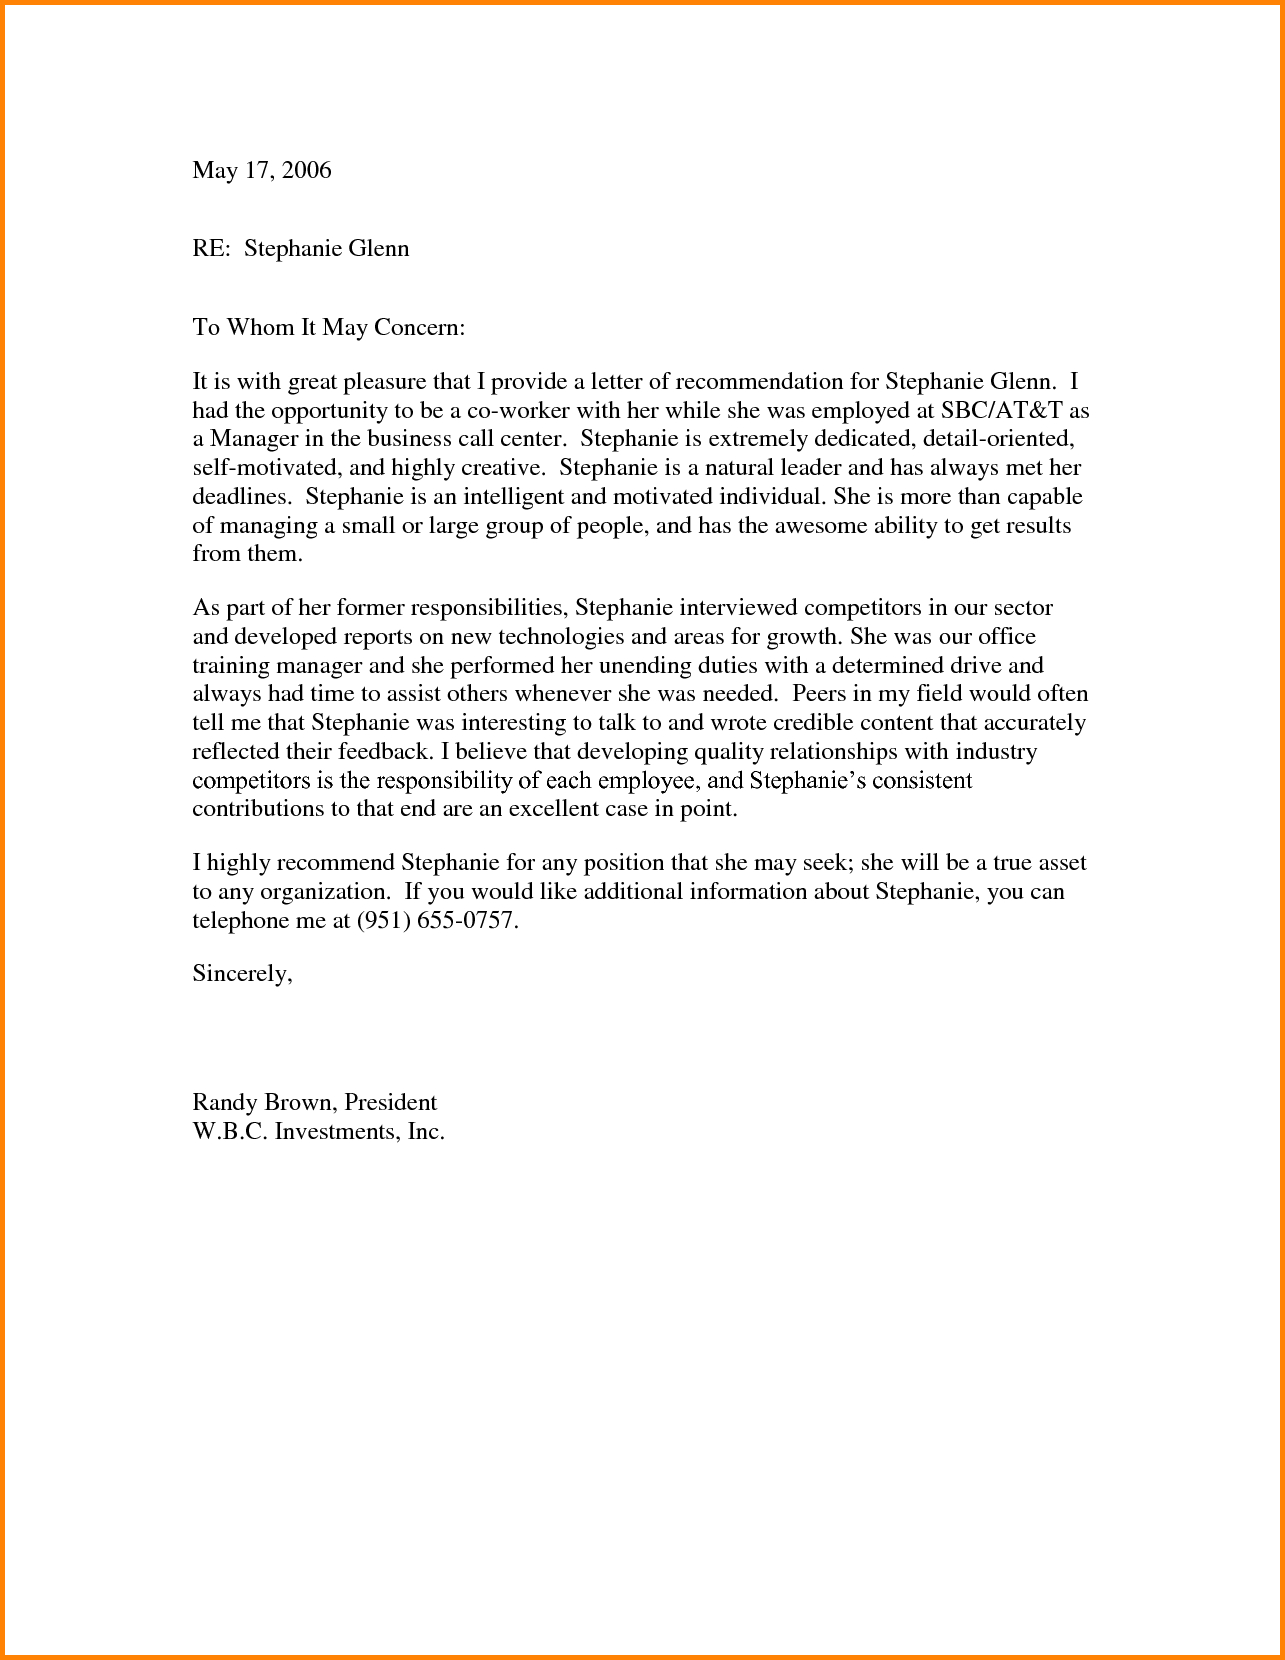 Co Worker Letter Of Recommendation.Template For Writing A Letter Of Recommendation For A Coworker